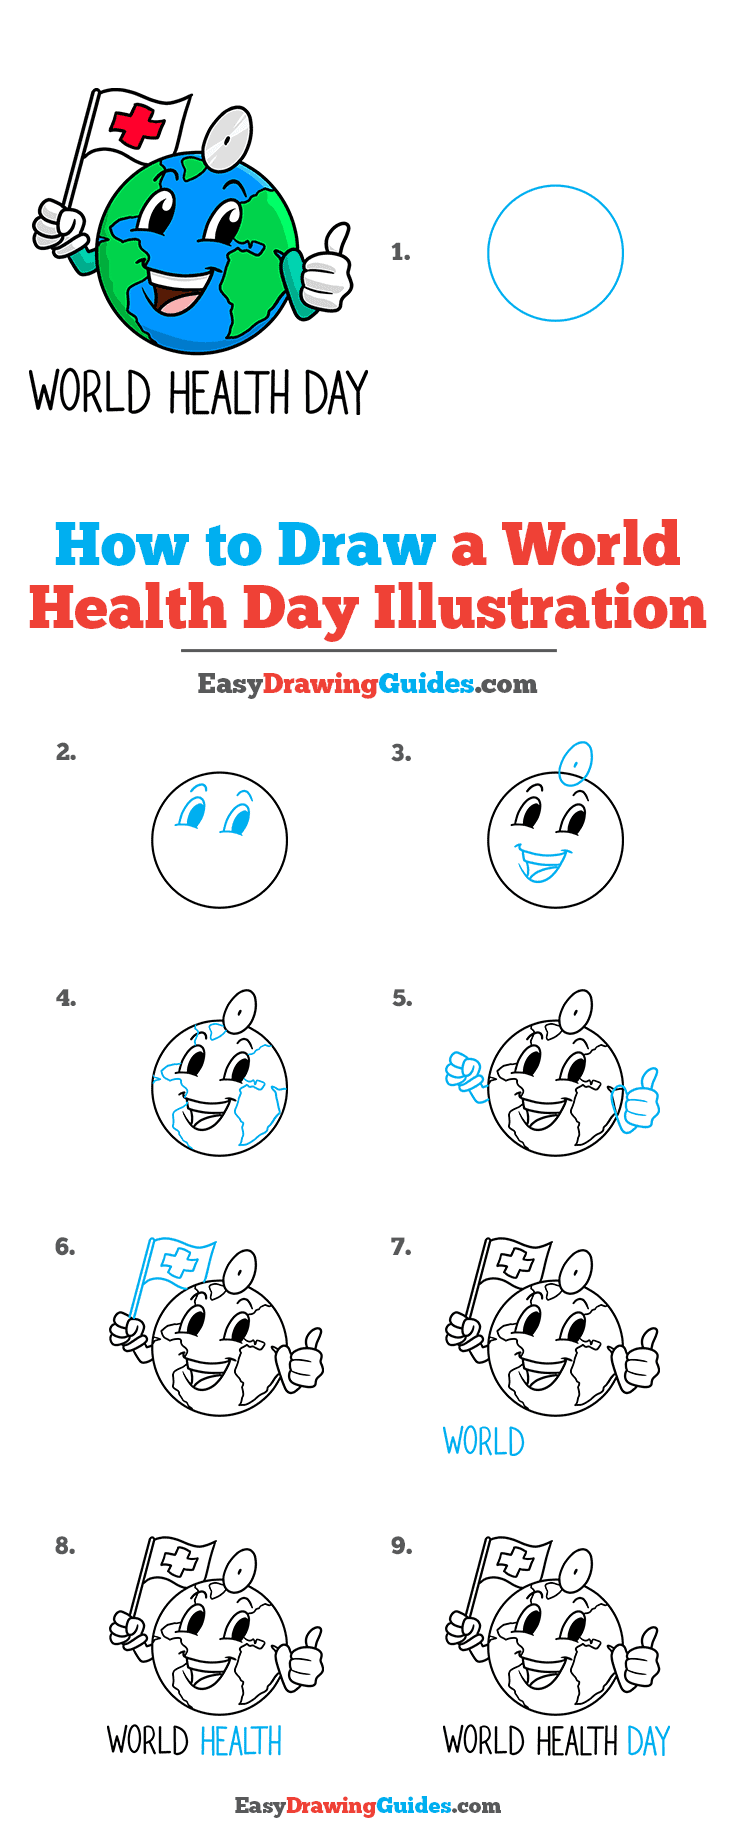 How to Draw World Health Day Illustration